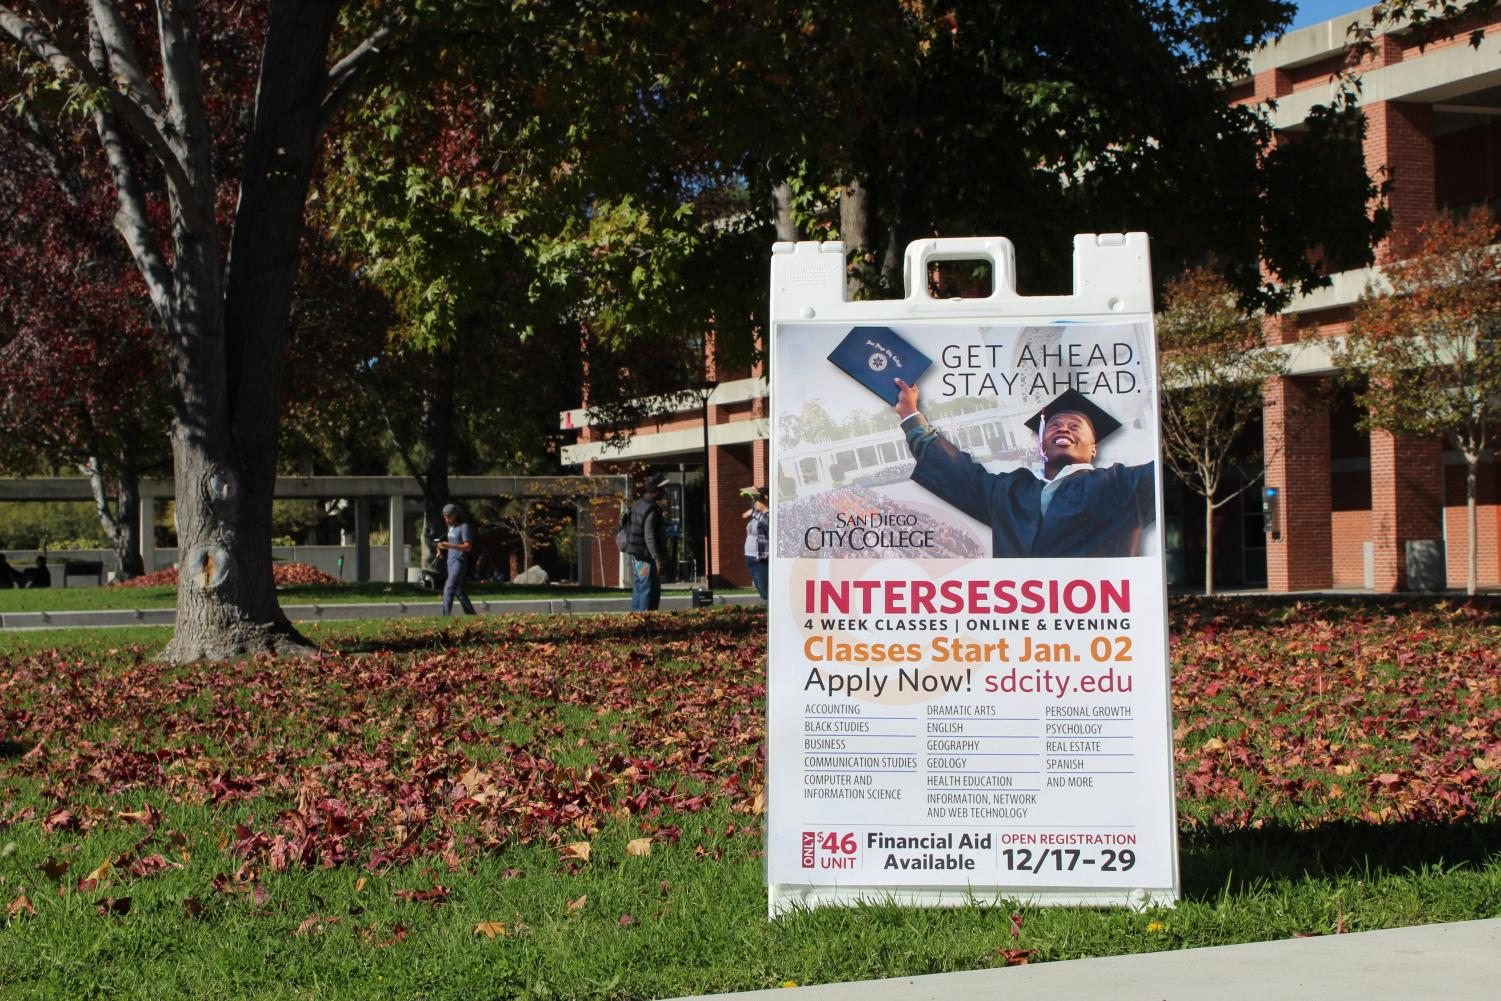 Signs on campus during the fall semester reminded students to register for intercession classes. Jonny Rico, City Times